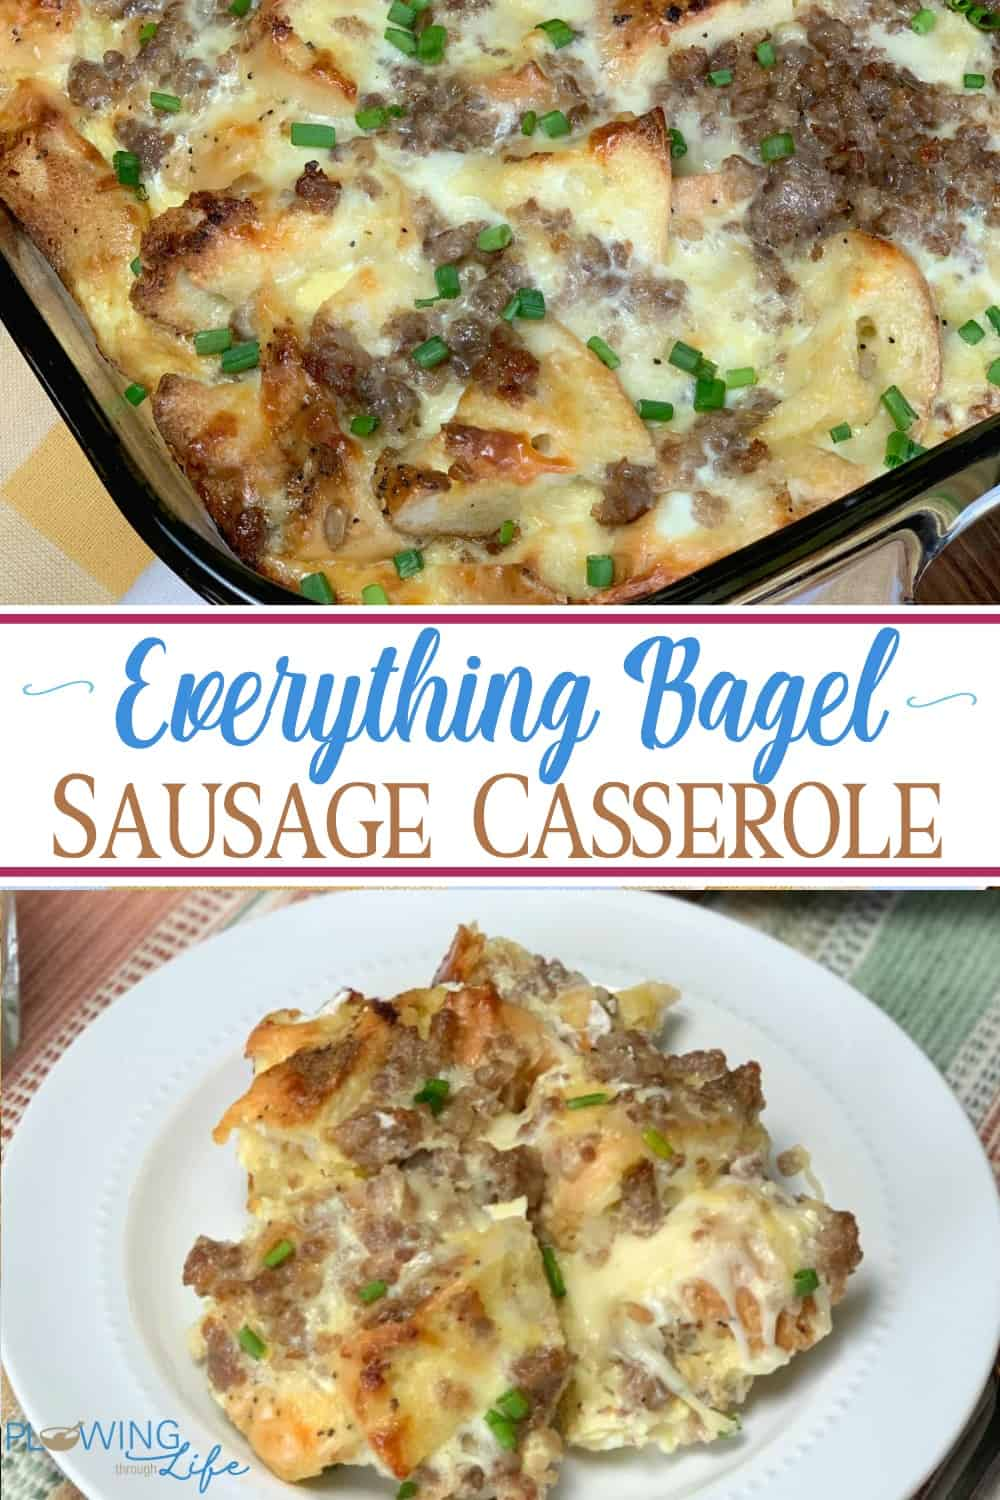 Are you looking for a nice casserole with unique flavors that is easy to make?  Everything Bagel and Sausage Casserole has bold bagel seasonings, maple sausage and rich cheese to create a memorable breakfast or bunch!